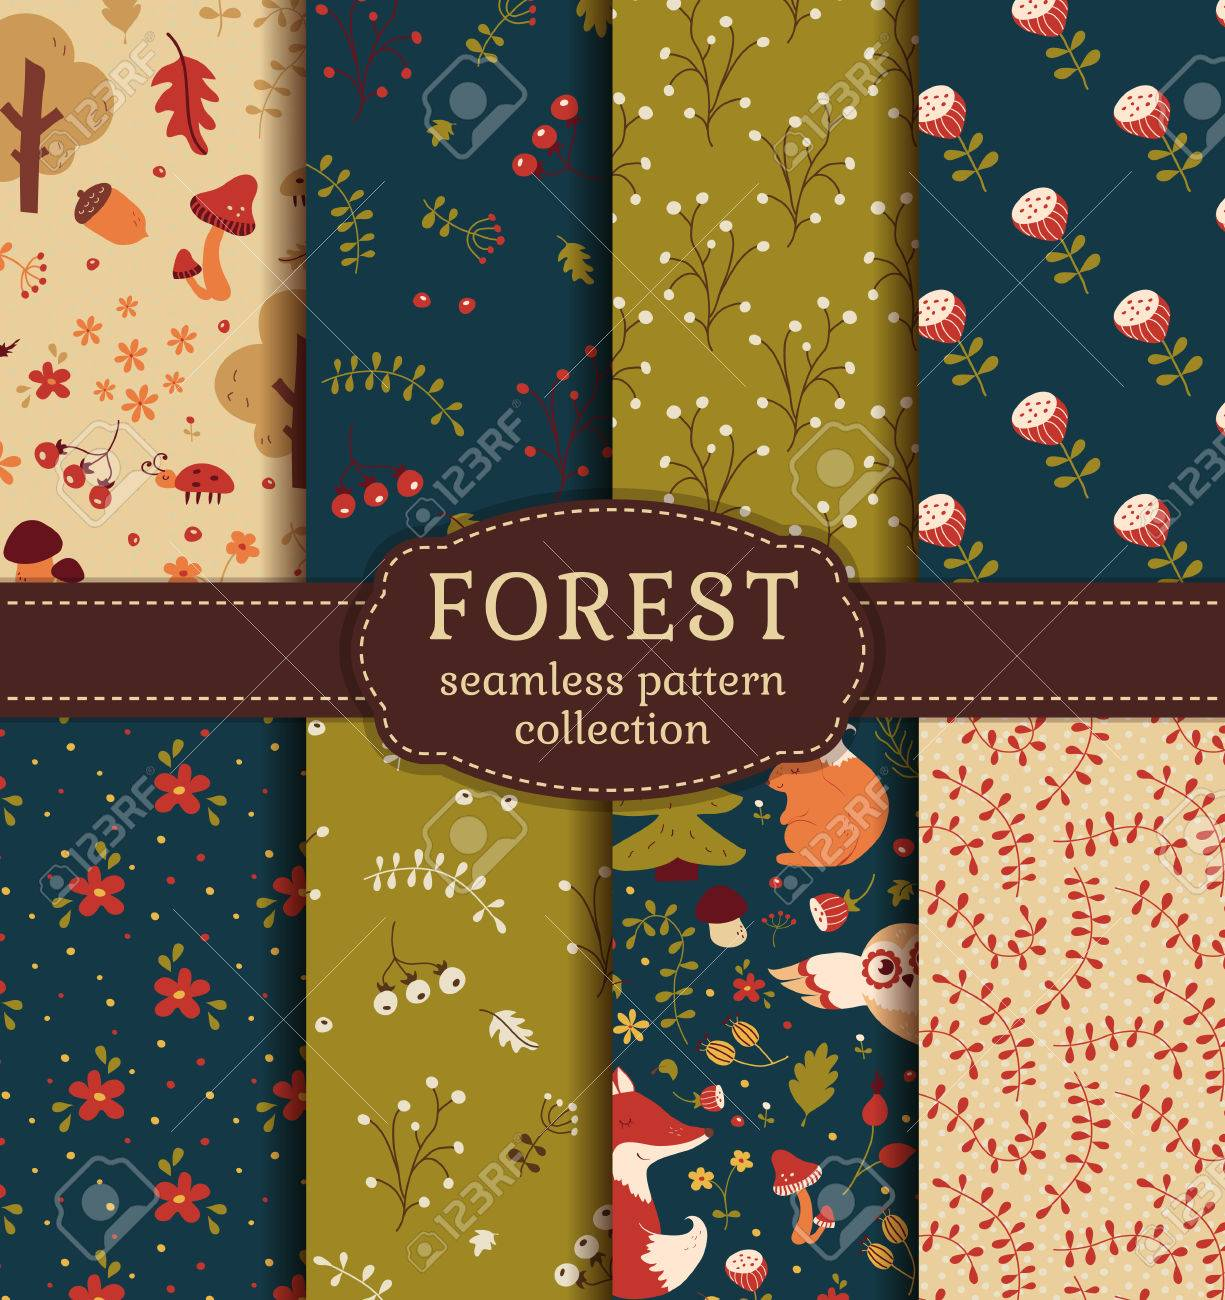 Forest seamless patterns with hand drawn animals, flowers and plants. Set of cute nature textiles in blue, green, red and beige colors. Vector collection for baby design. - 51696049